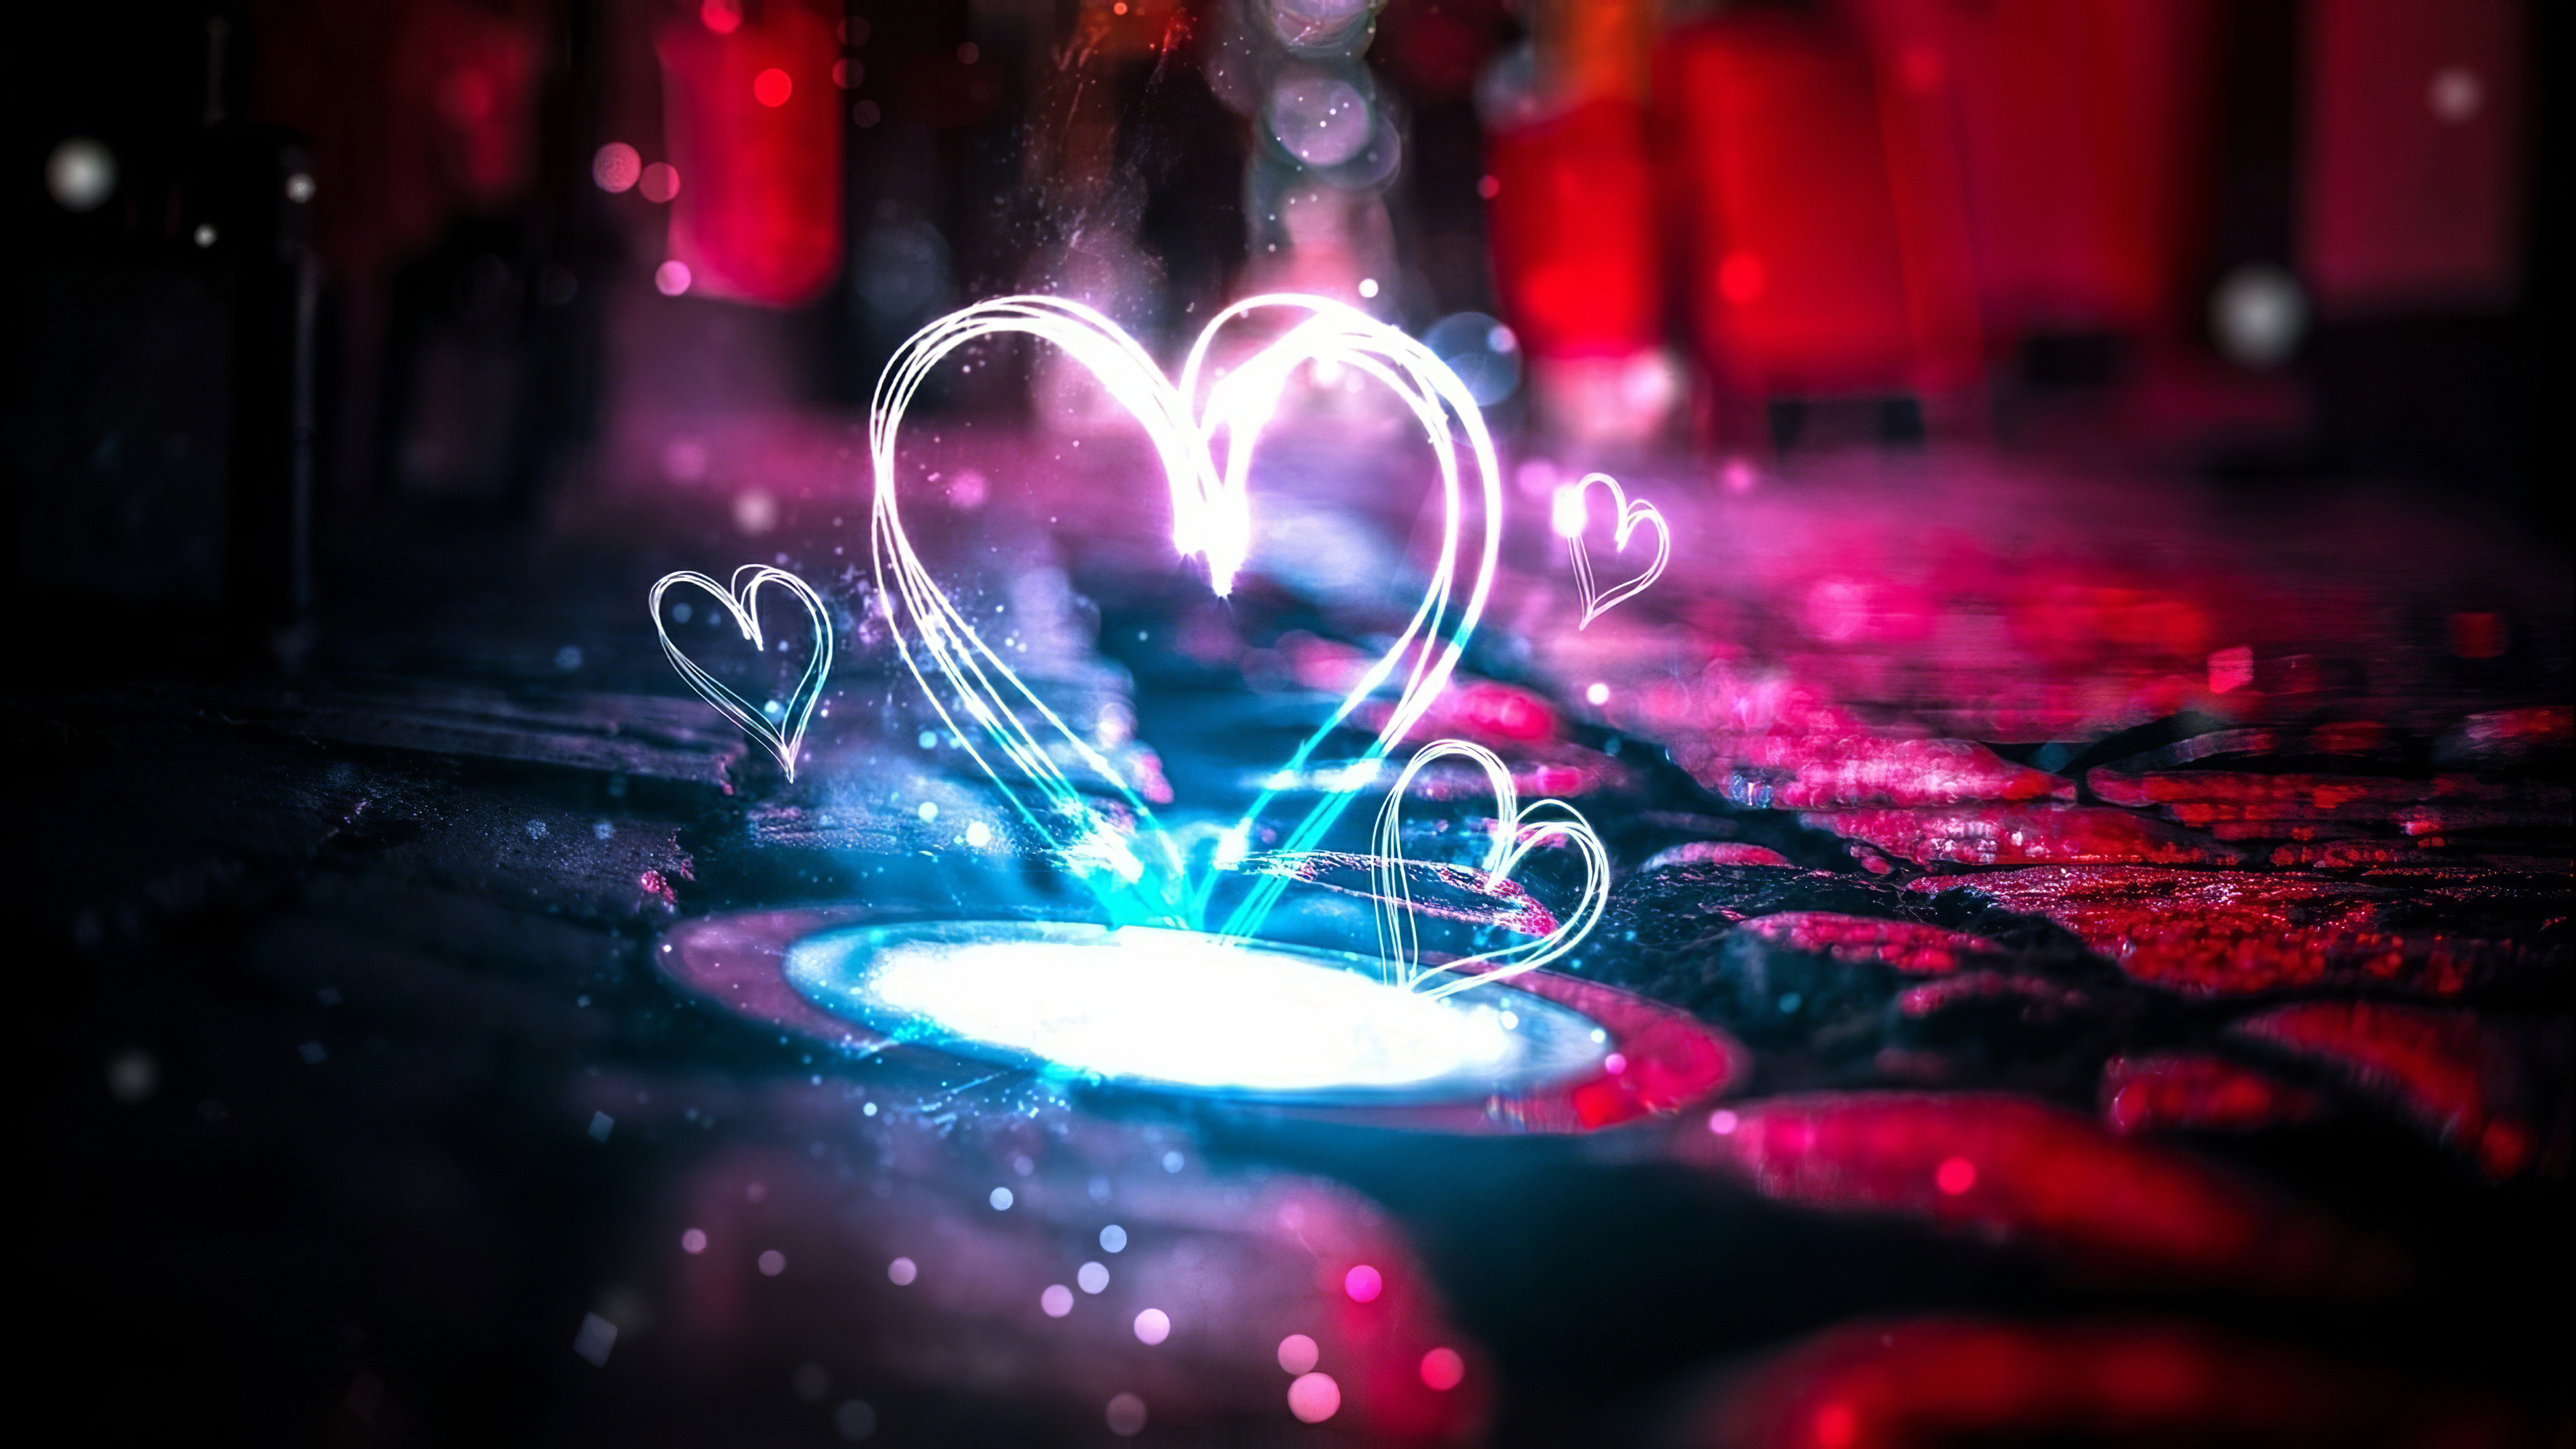 Electric Love Heat 4k Hd Love 4k Wallpapers Images Backgrounds Photos And Pictures